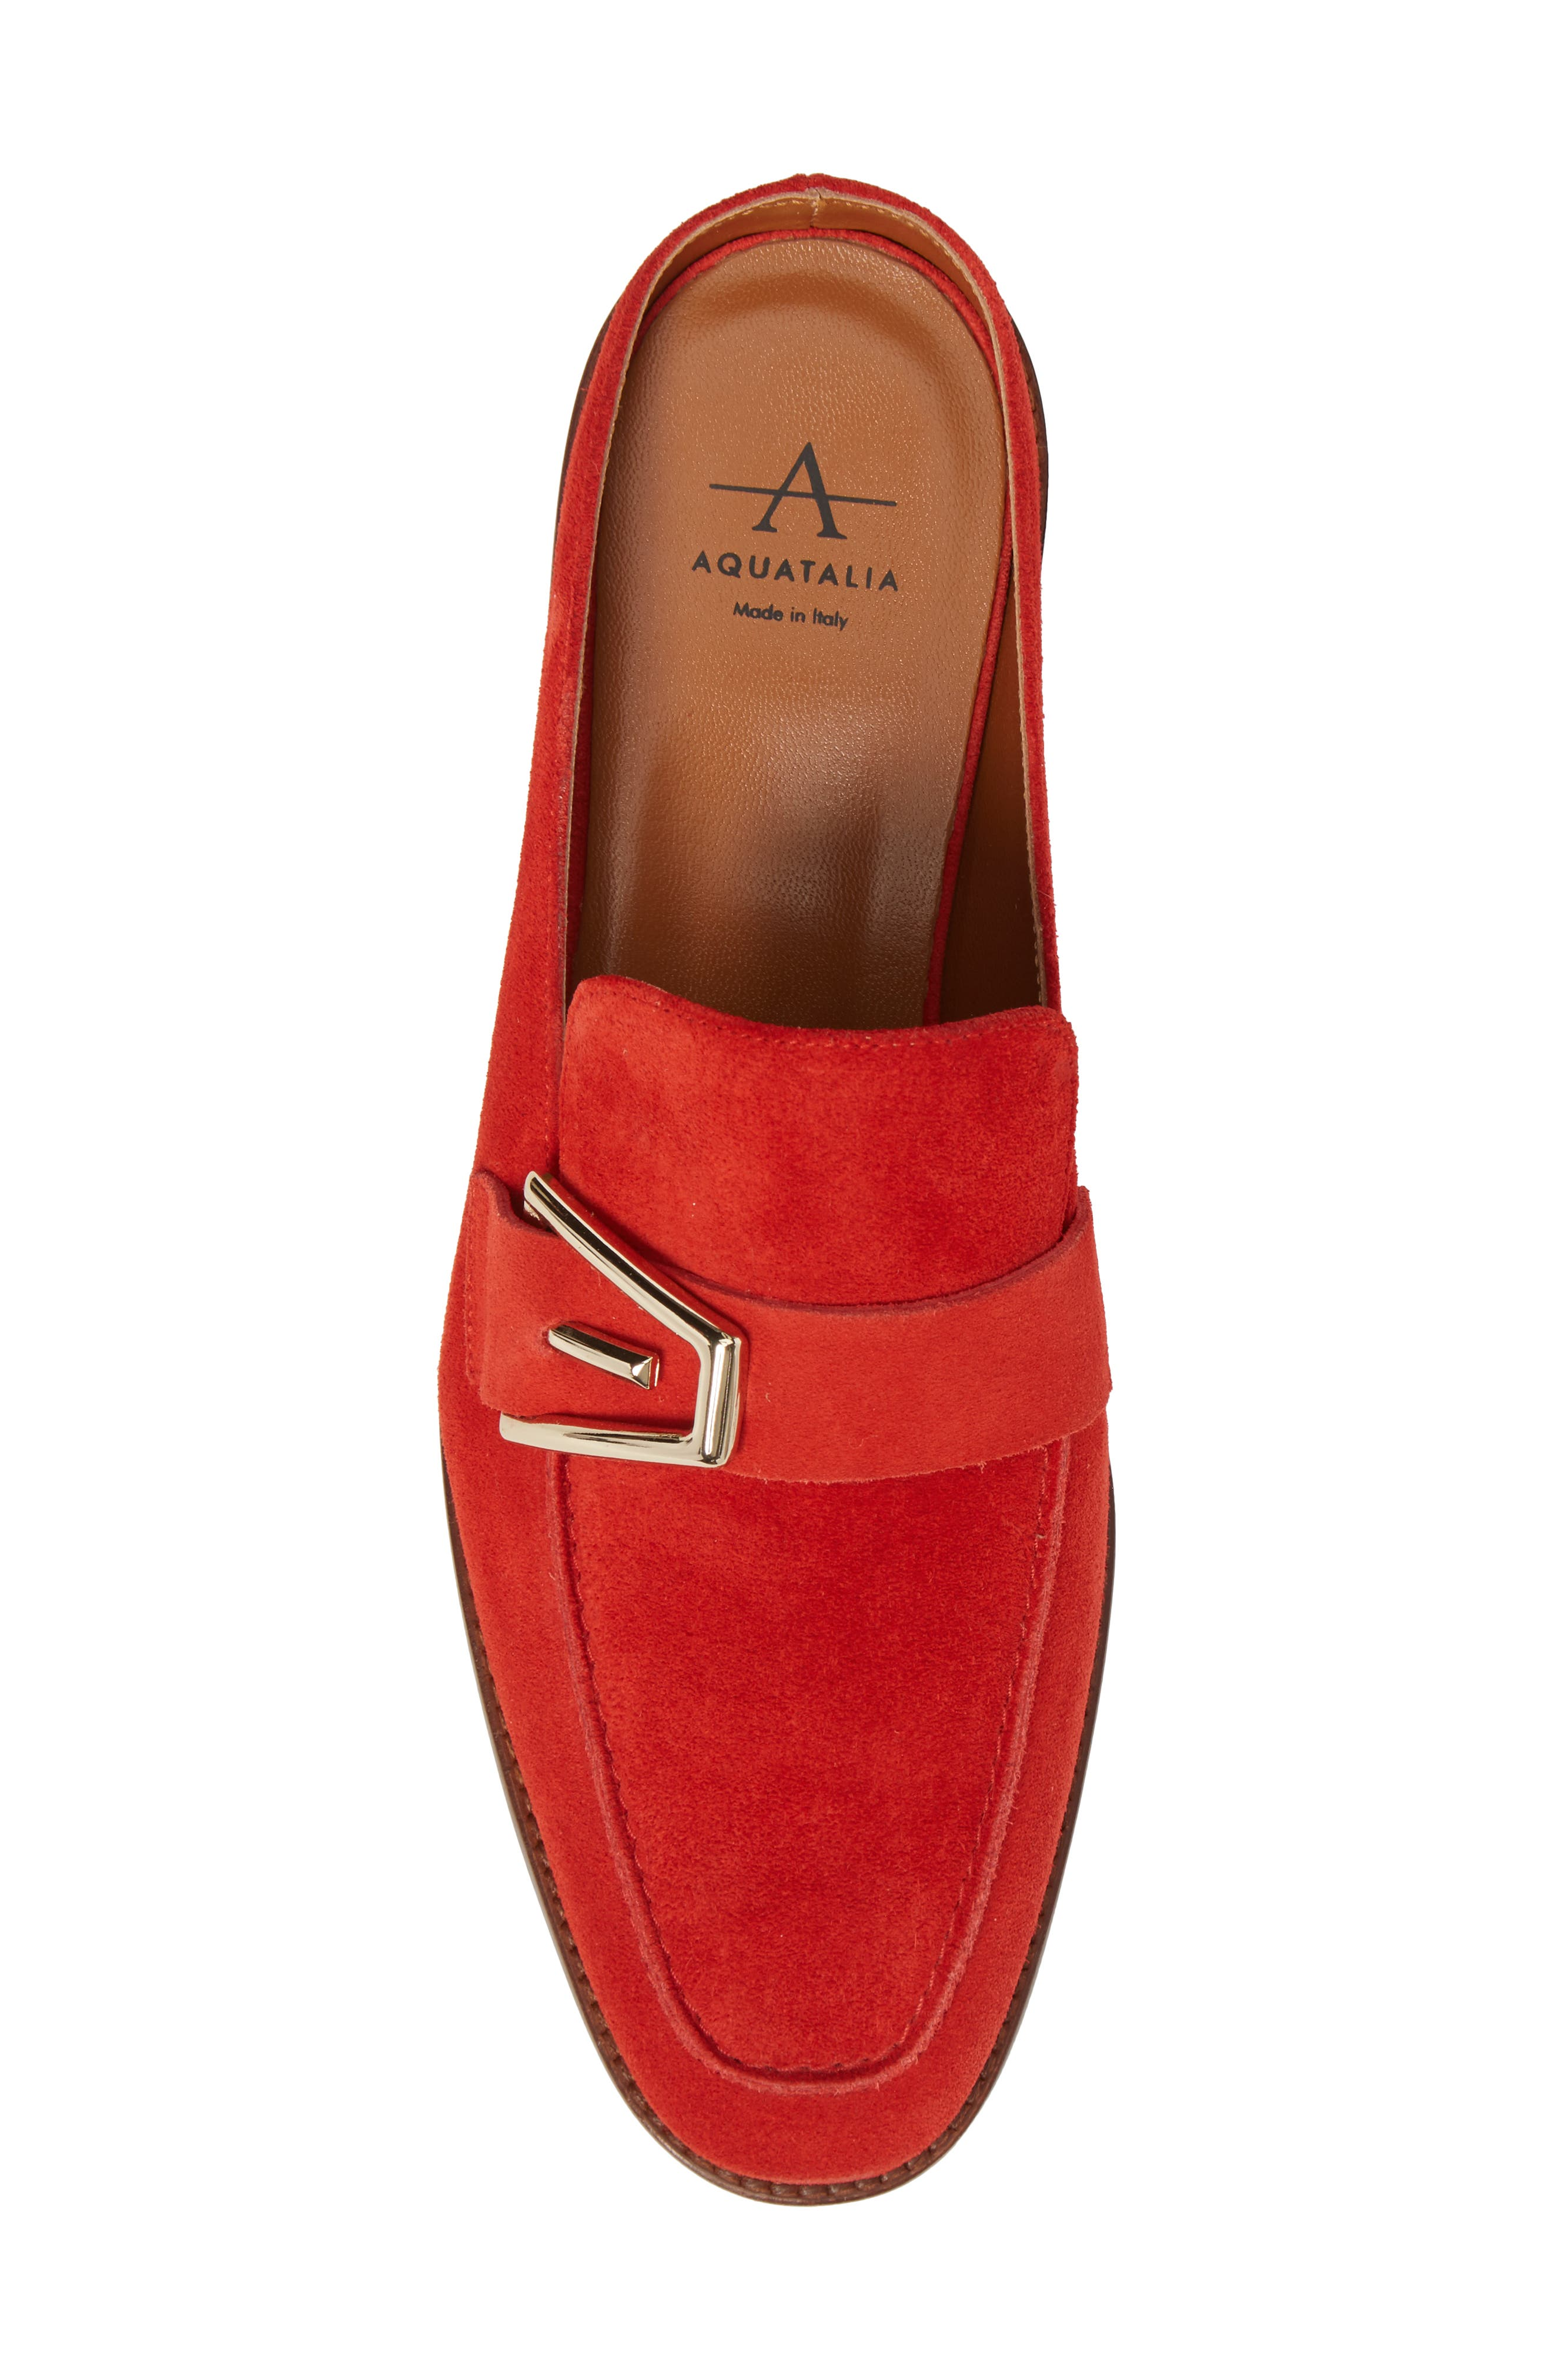 Tosca Loafer Mule,                             Alternate thumbnail 10, color,